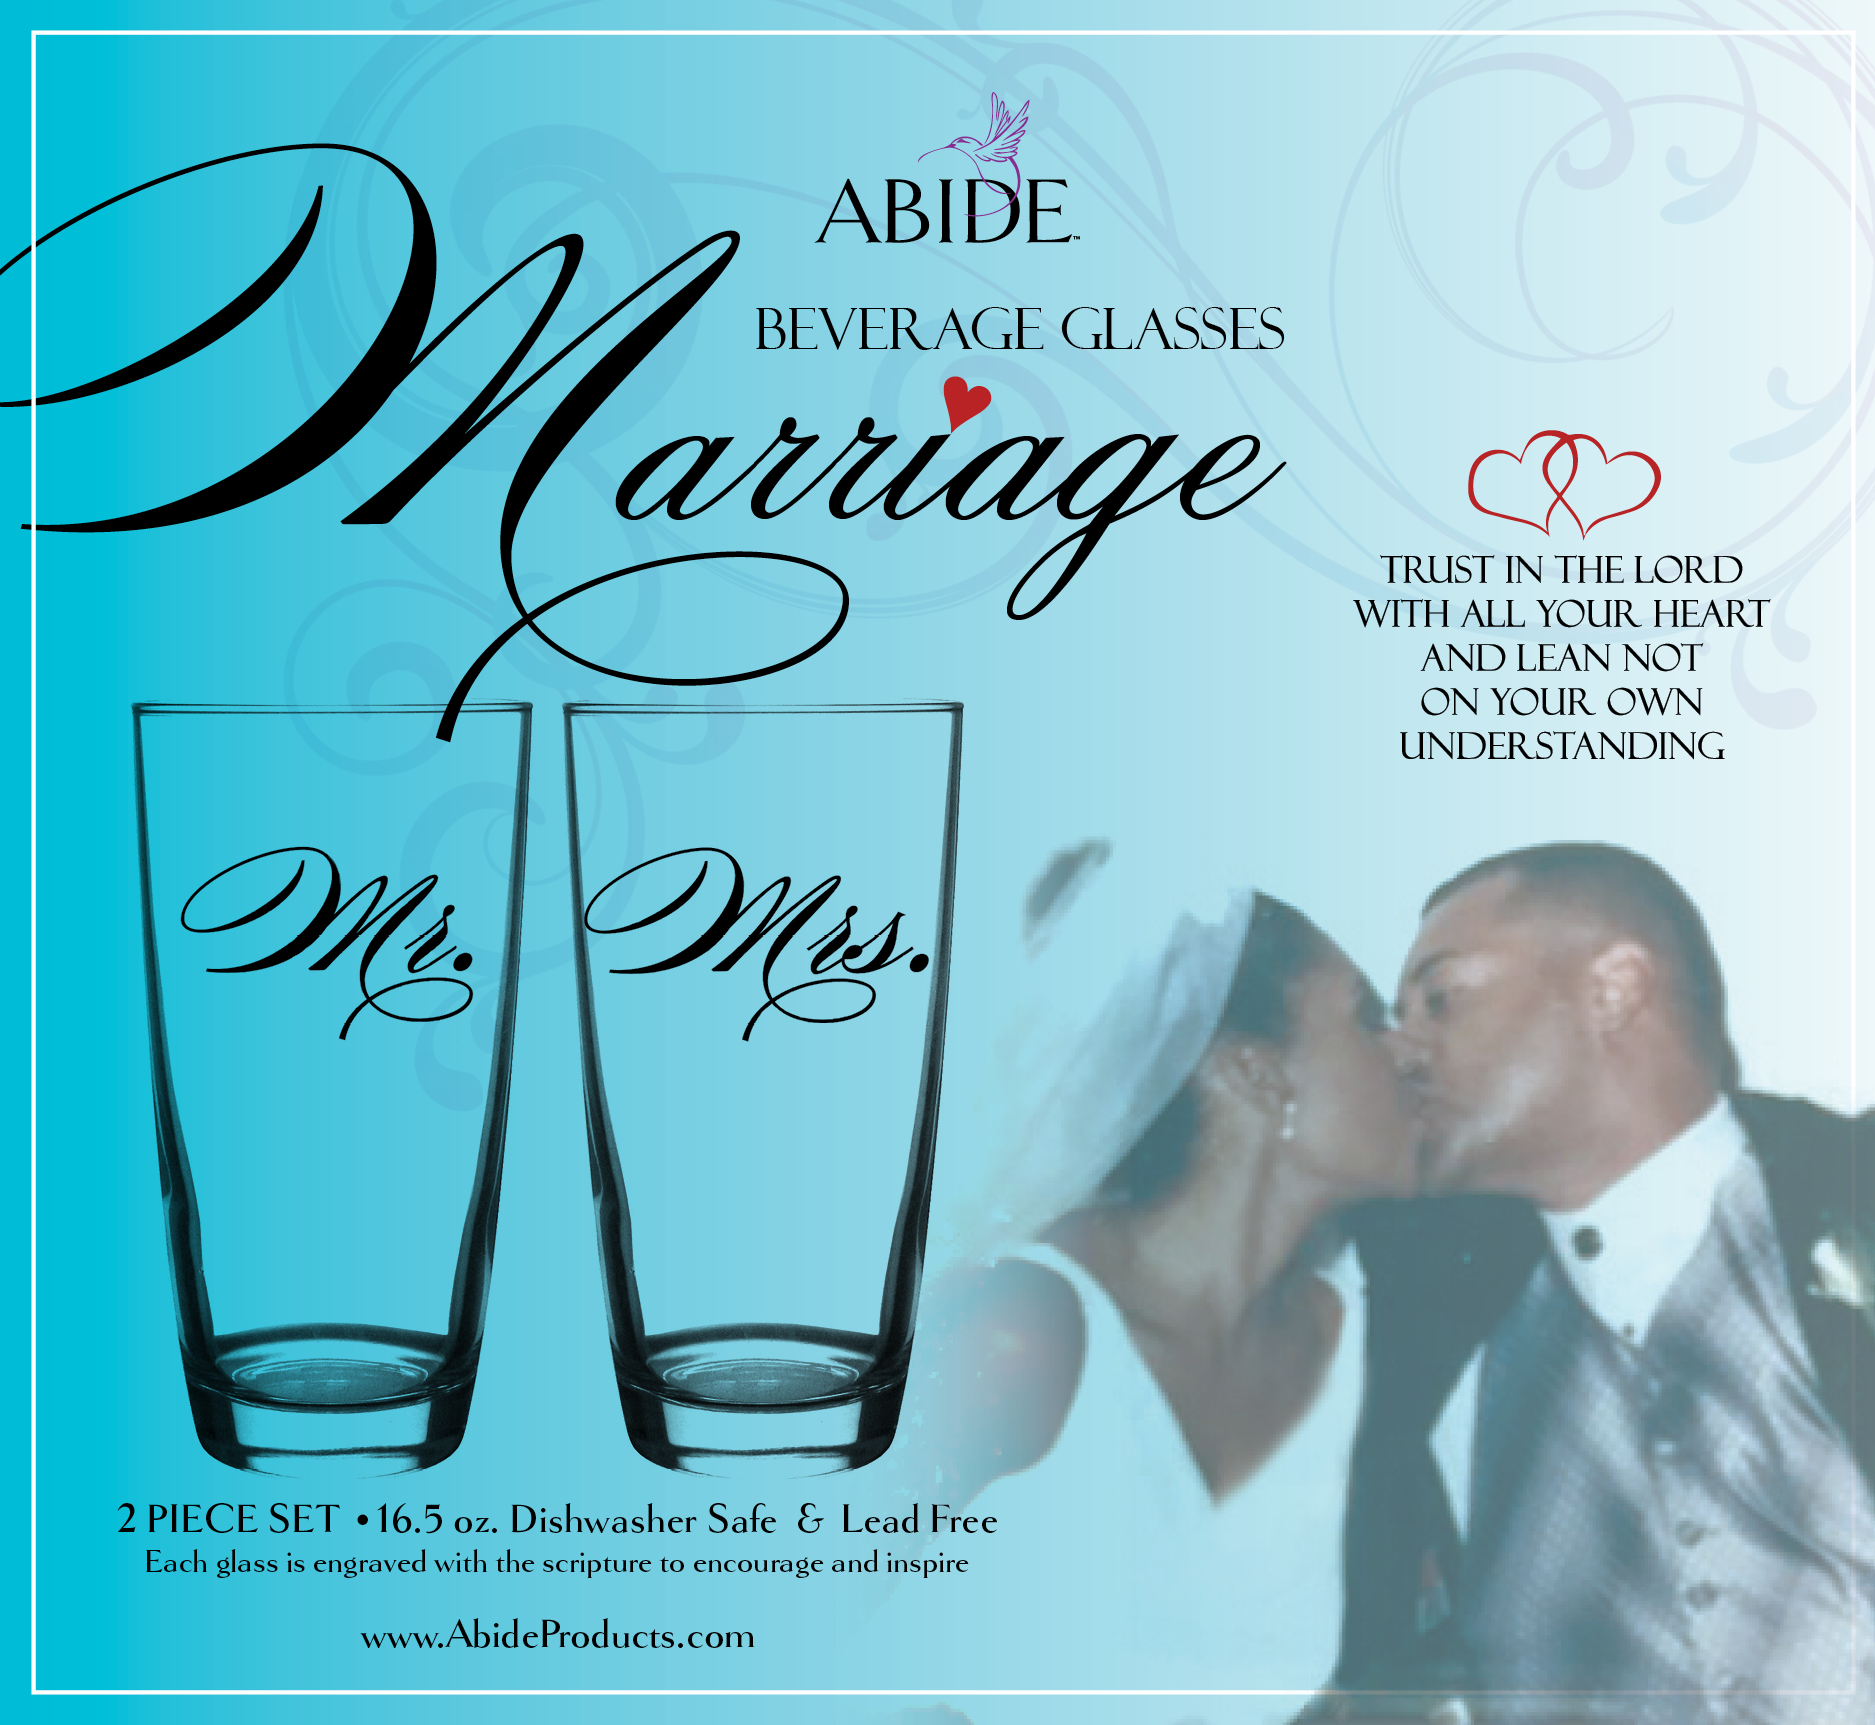 Abide Marriage Beverage Glasses